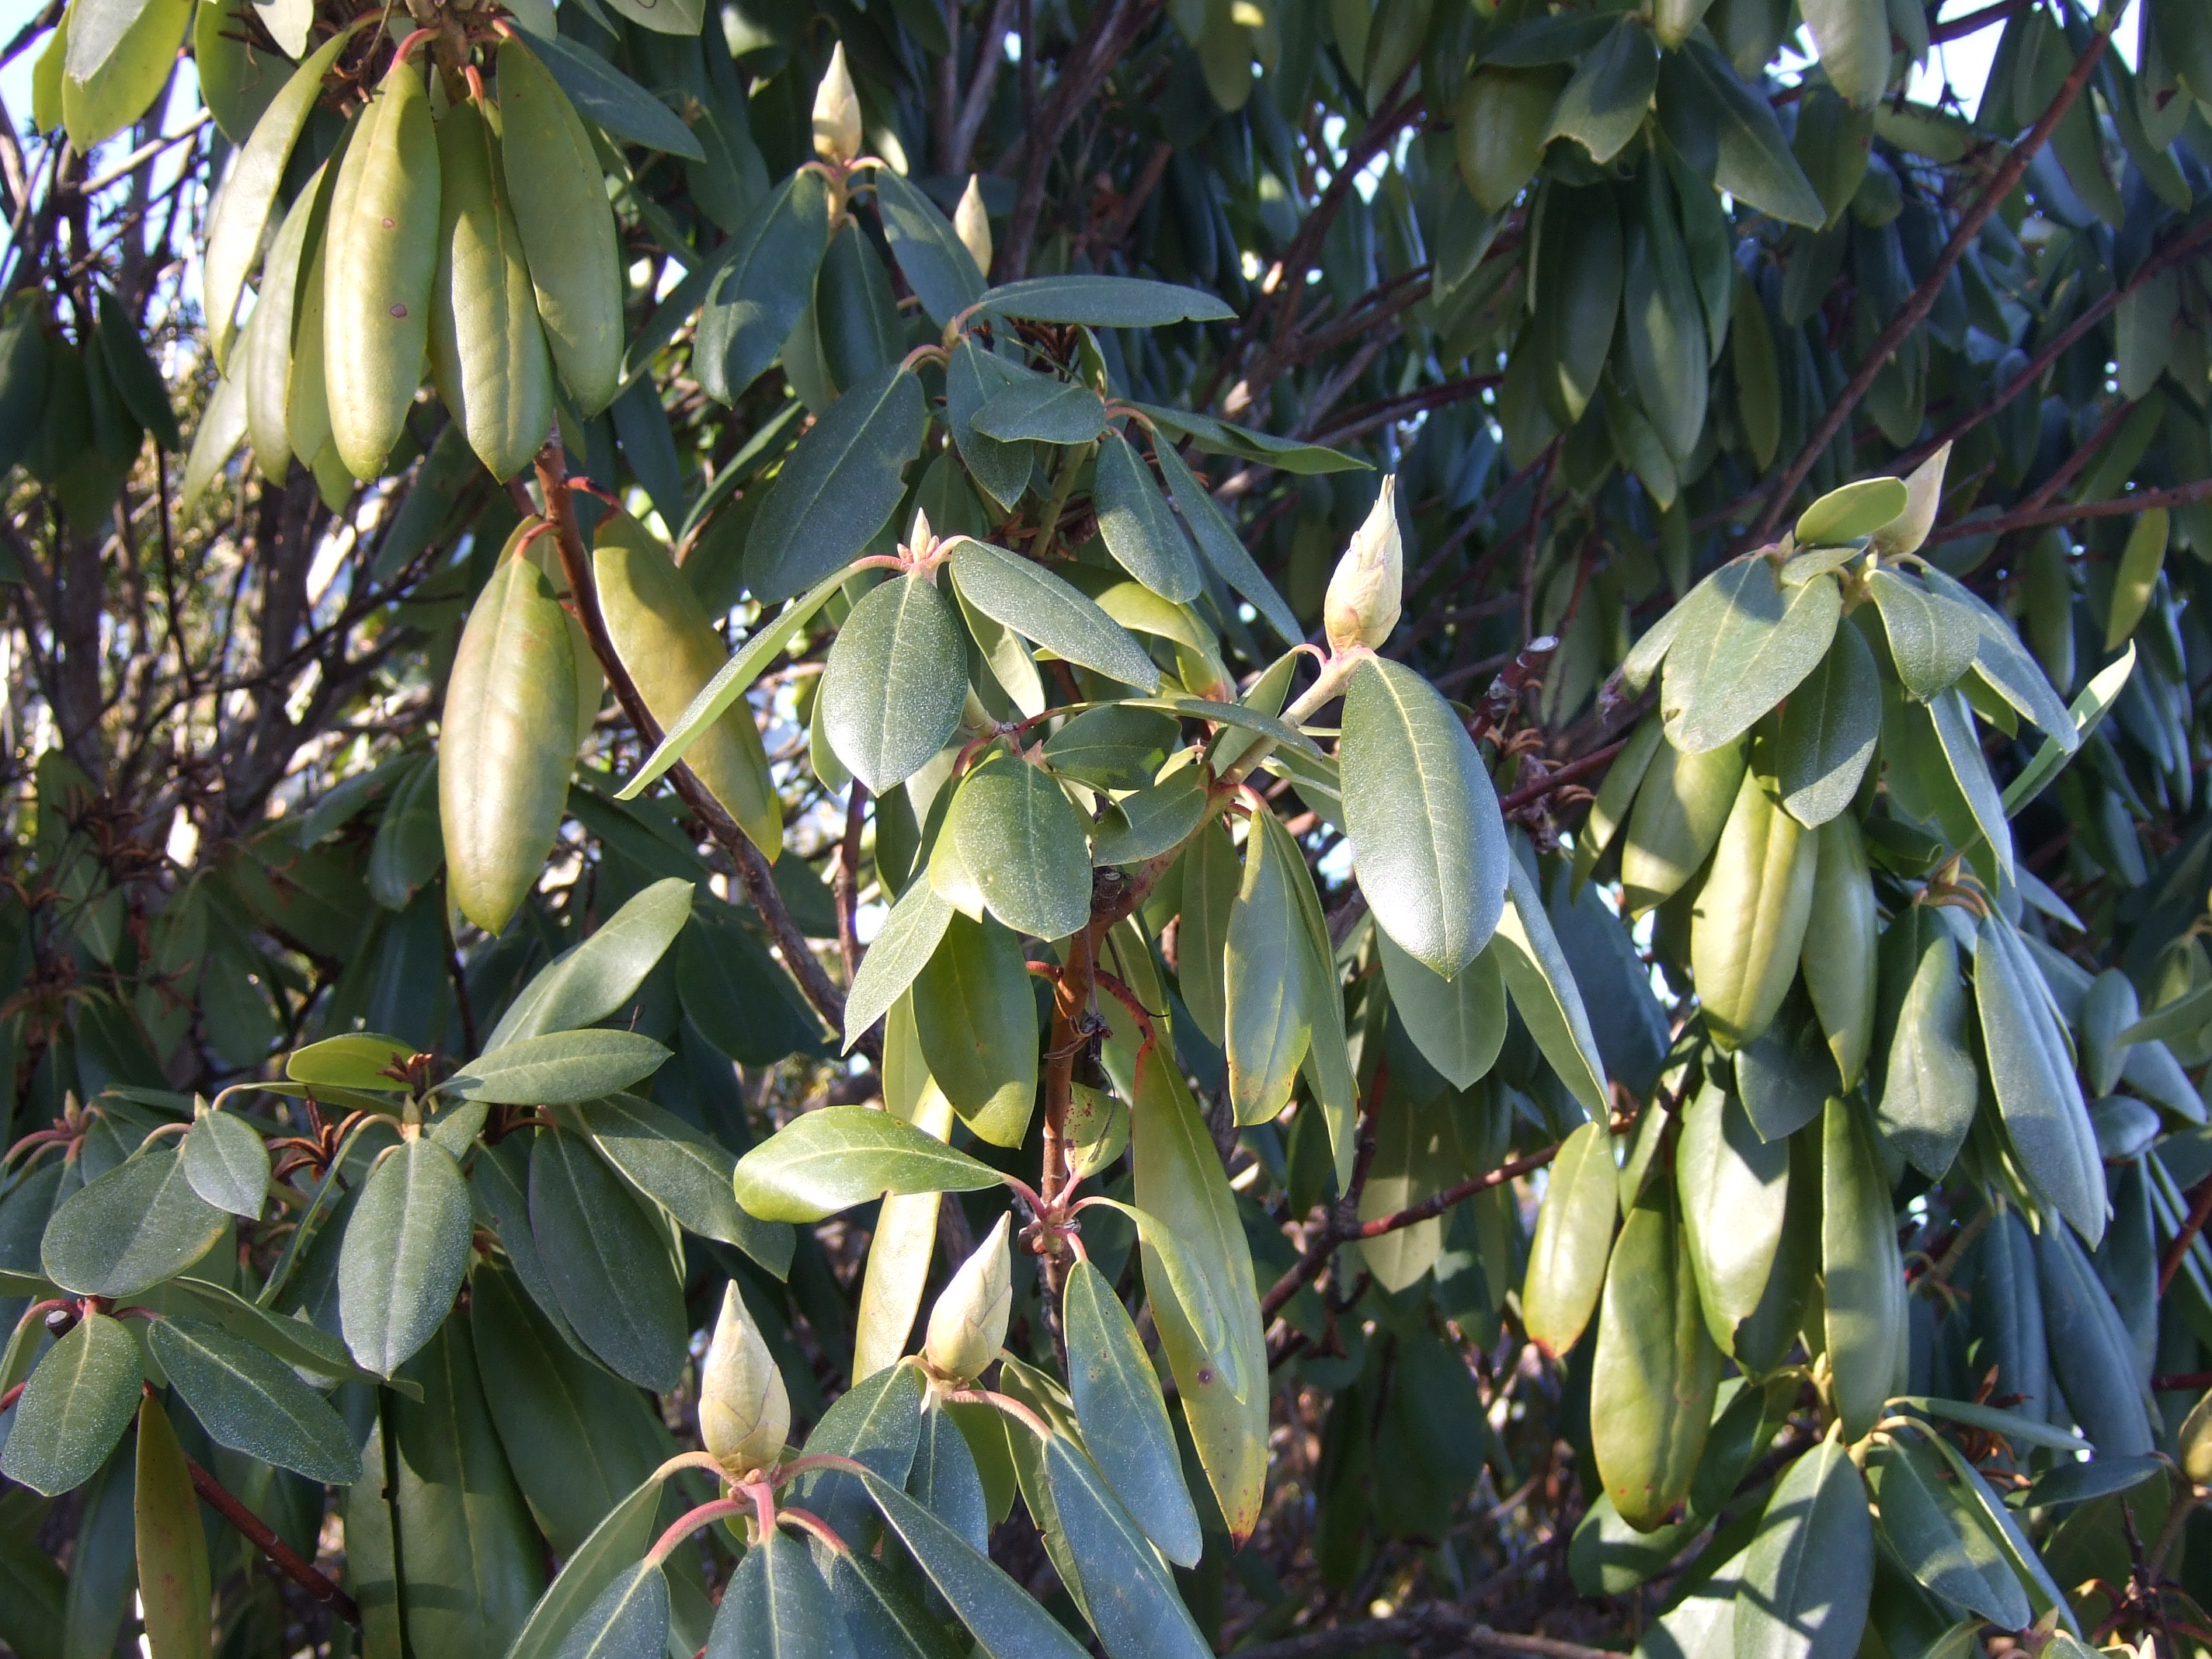 Rhododendron buds wait for Spring